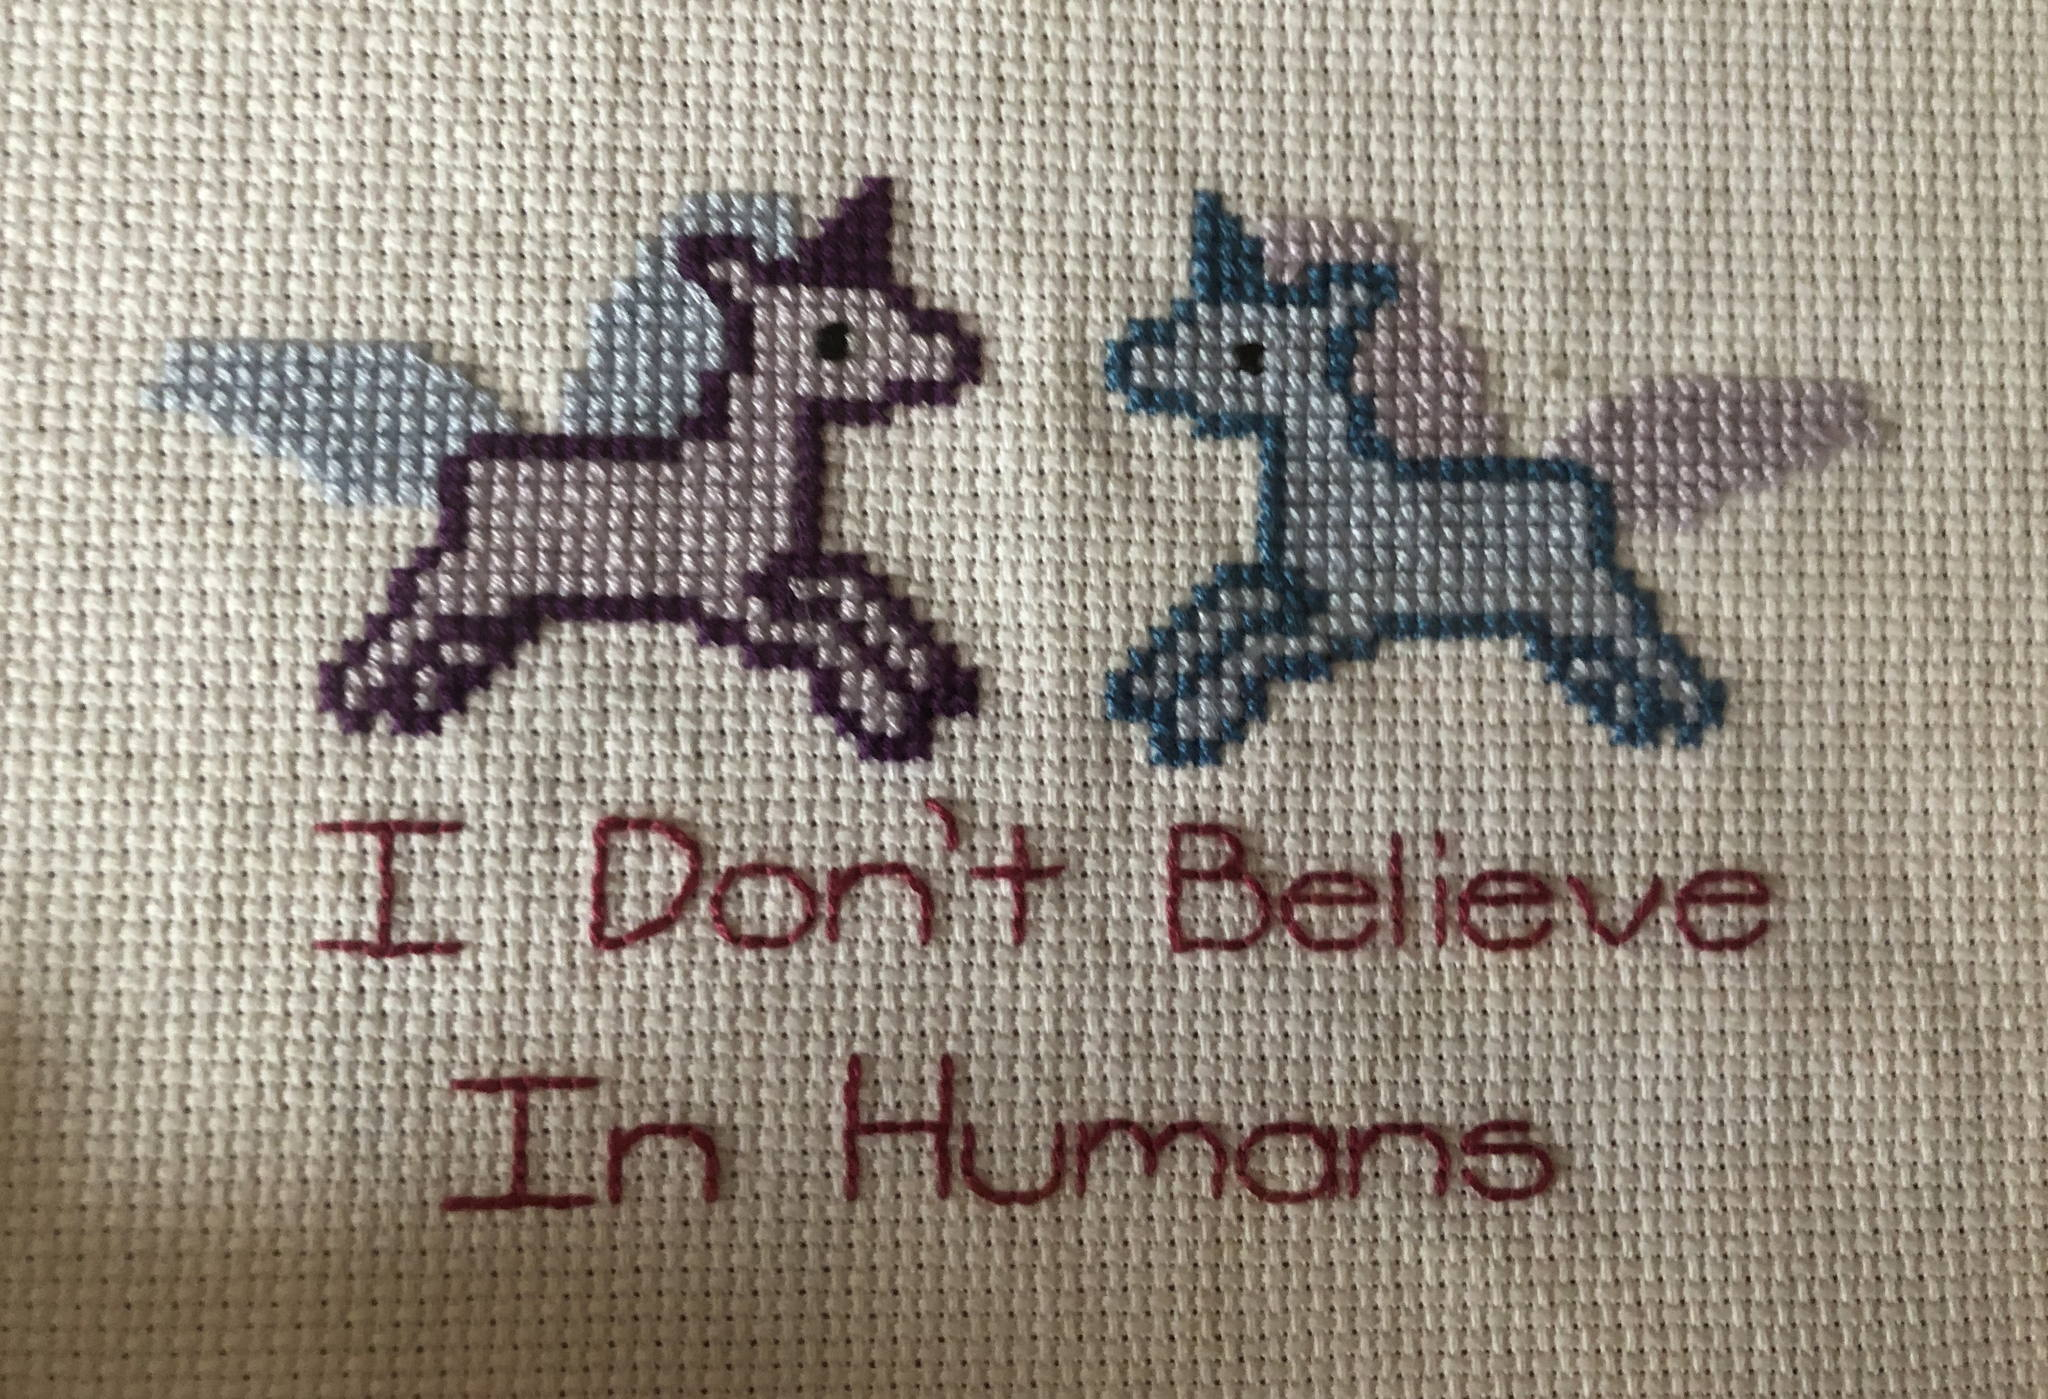 Stitching of two unicorns facing eachother with the words I don't believe in humans, underneath them.